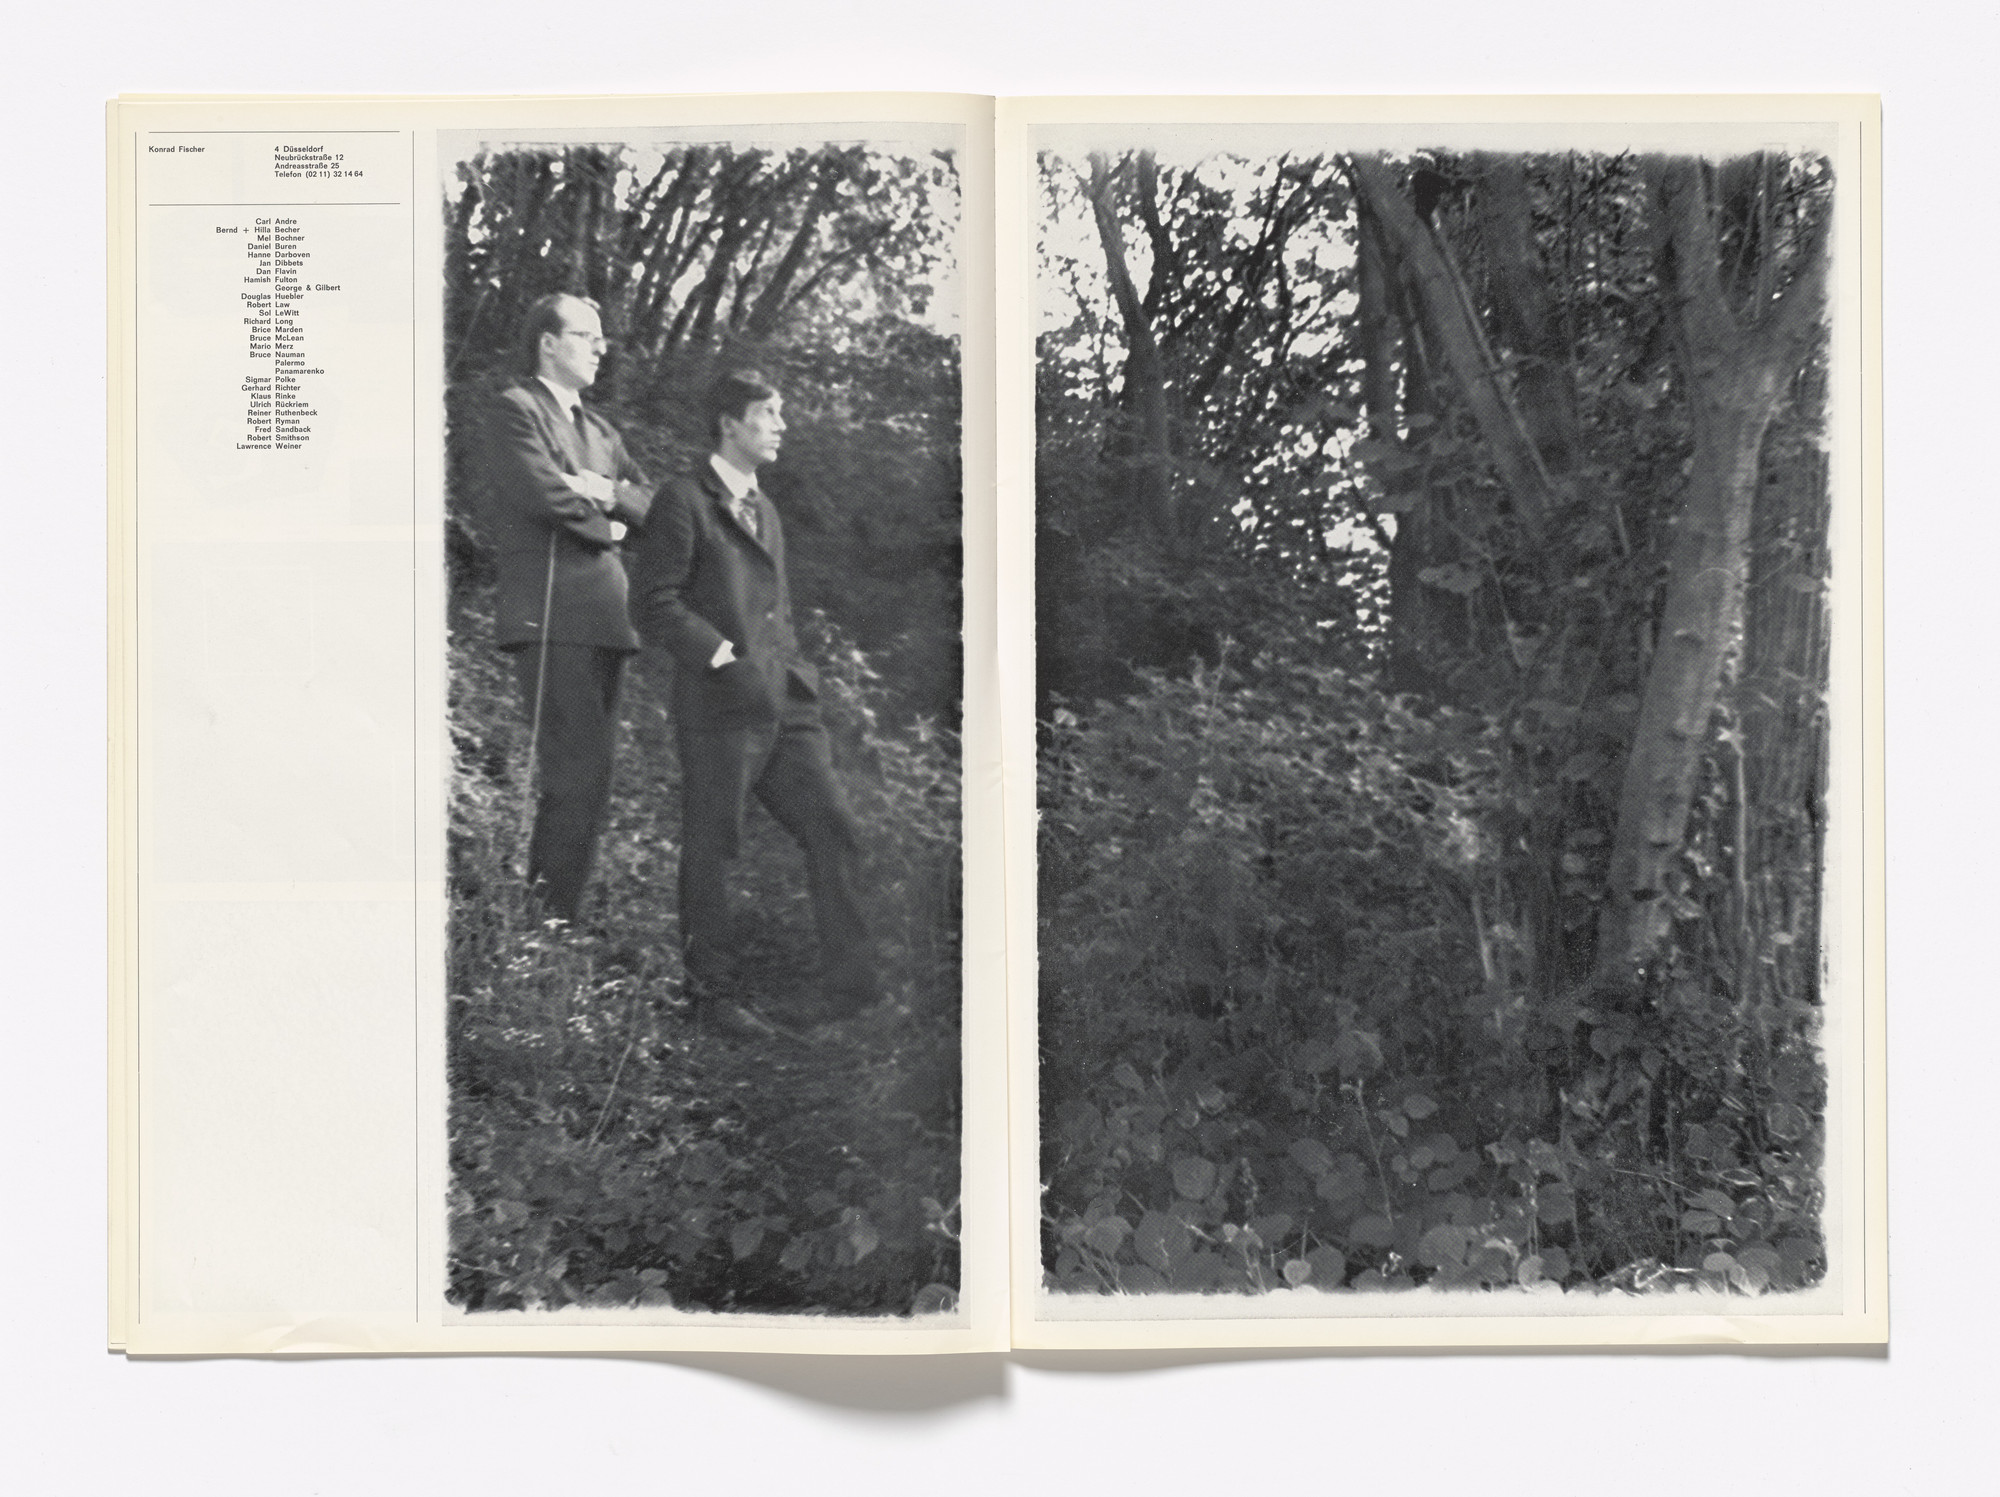 Gilbert & George. With Us In Nature from Kölner Kunstmarkt 70. 1970